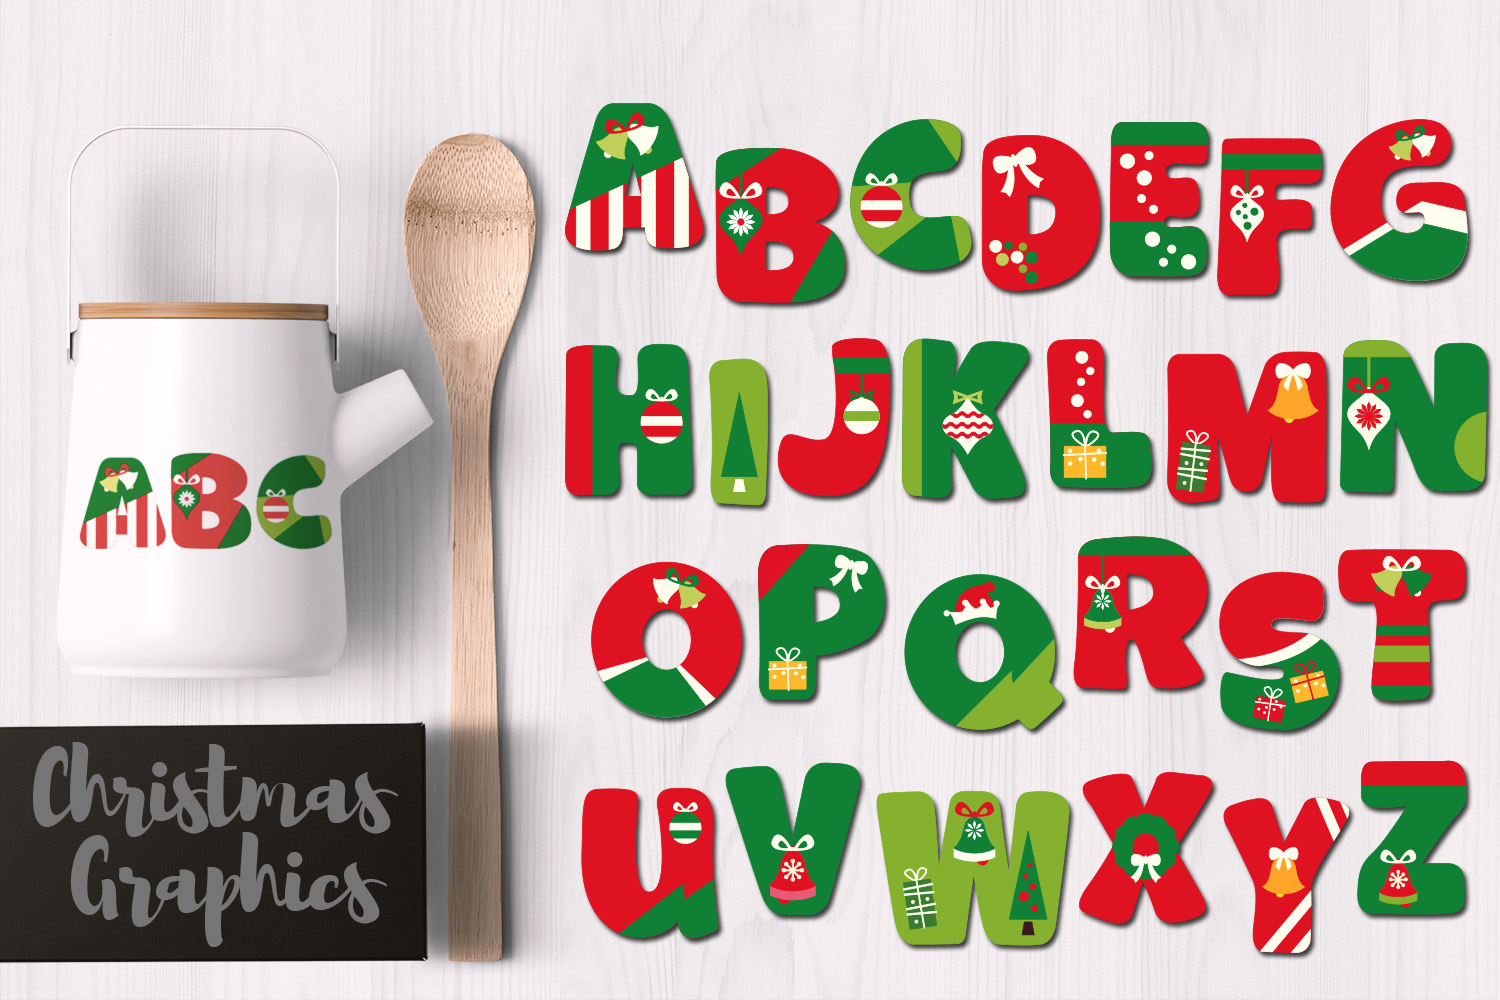 Download Free Christmas Alphabet Graphic By Revidevi Creative Fabrica for Cricut Explore, Silhouette and other cutting machines.